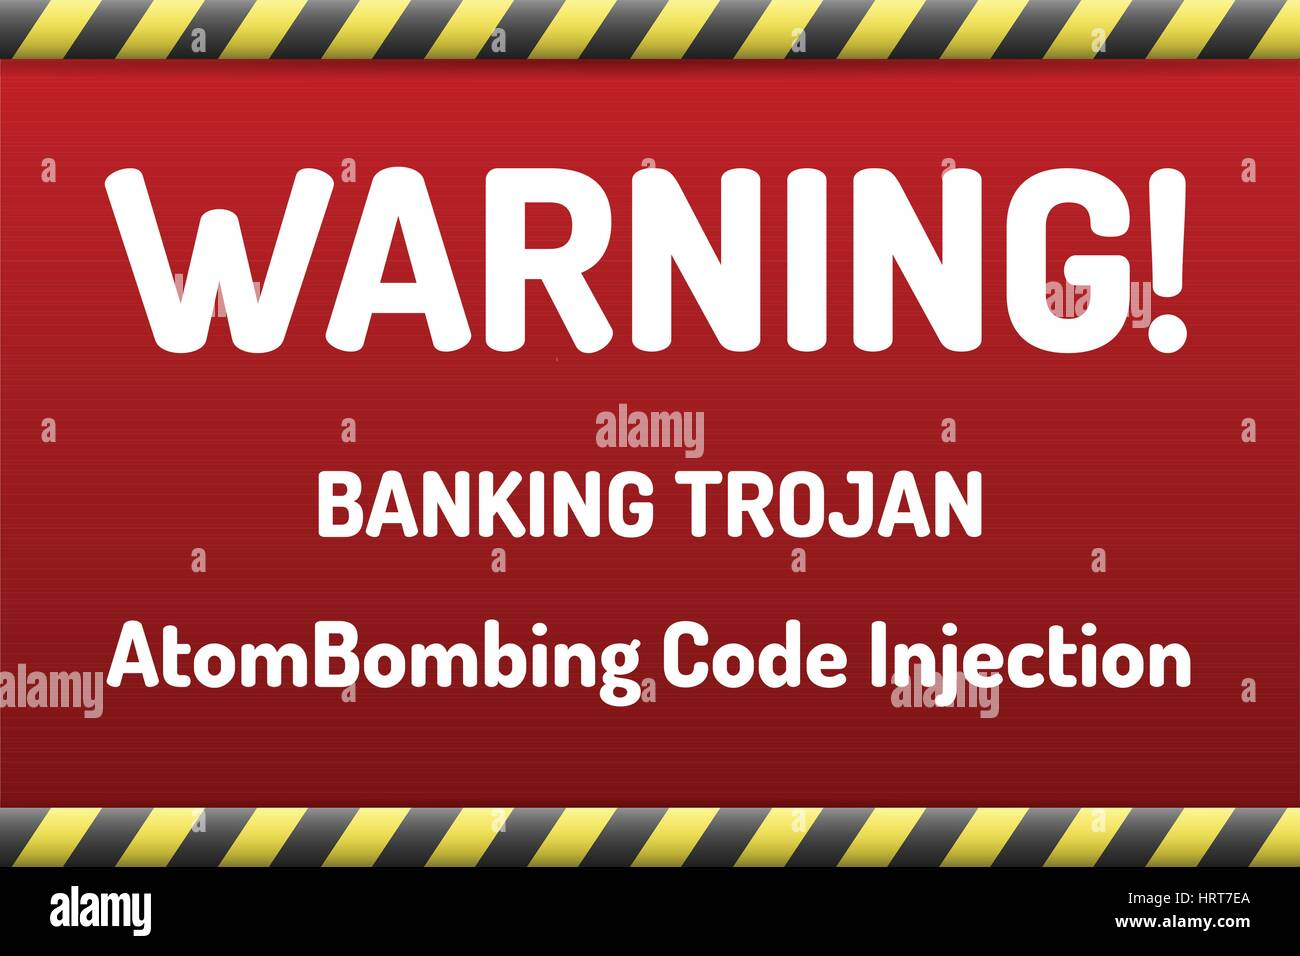 Trojan Vector Vectors Stock Photos & Trojan Vector Vectors Stock